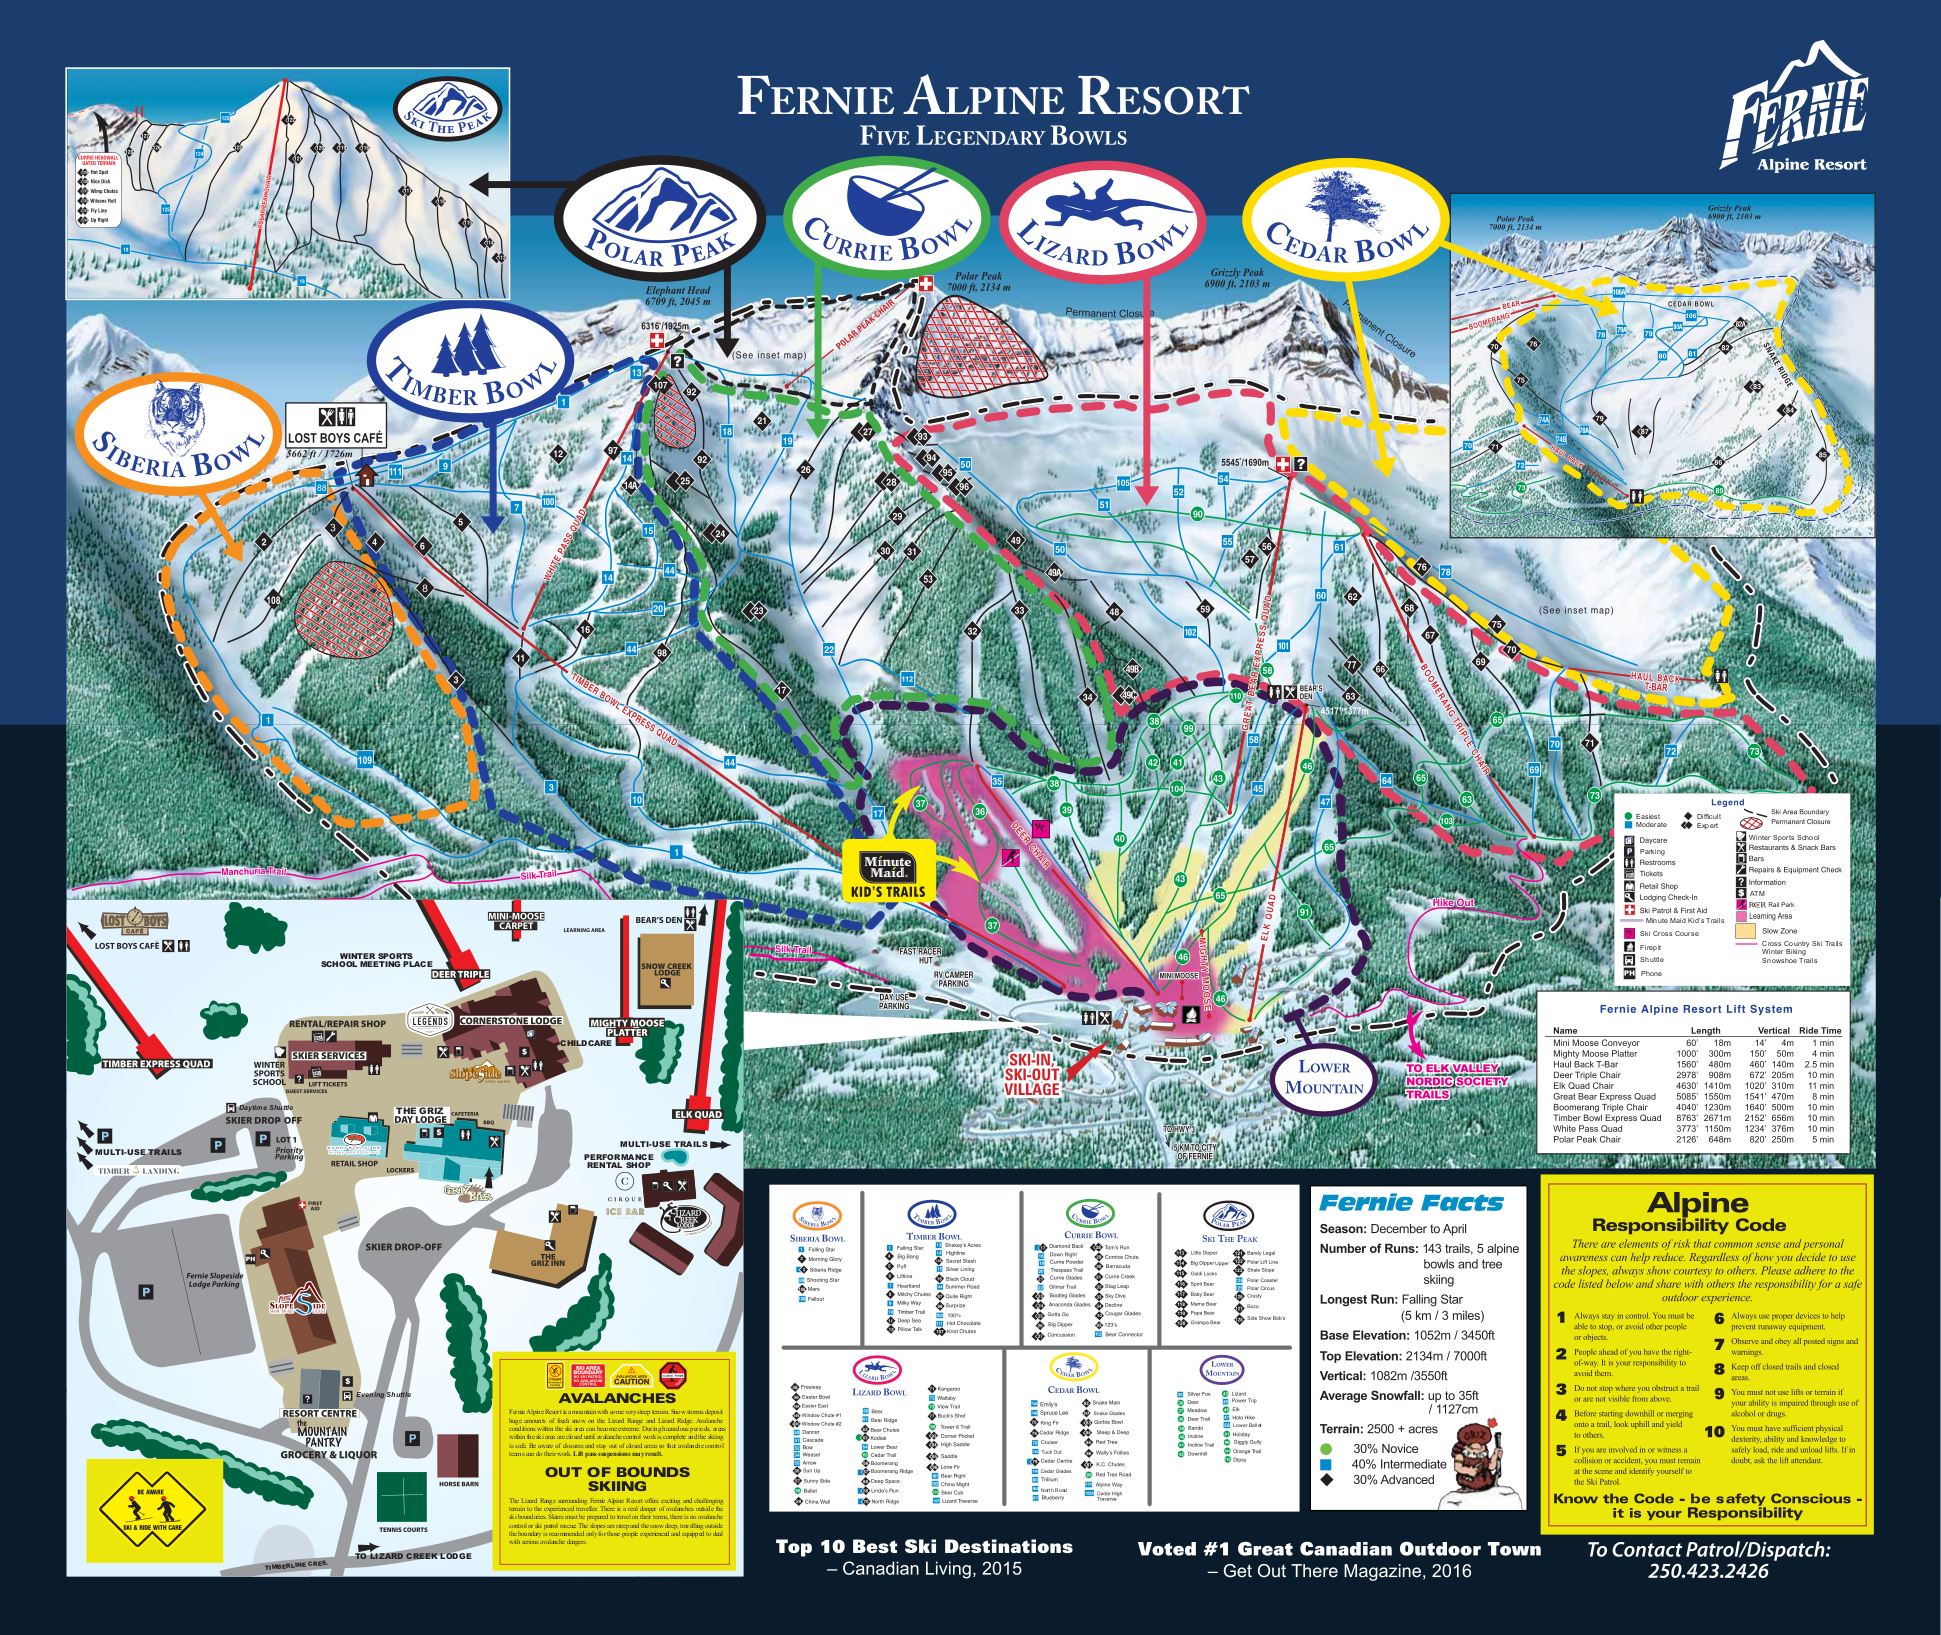 Fernie Piste / Trail Map